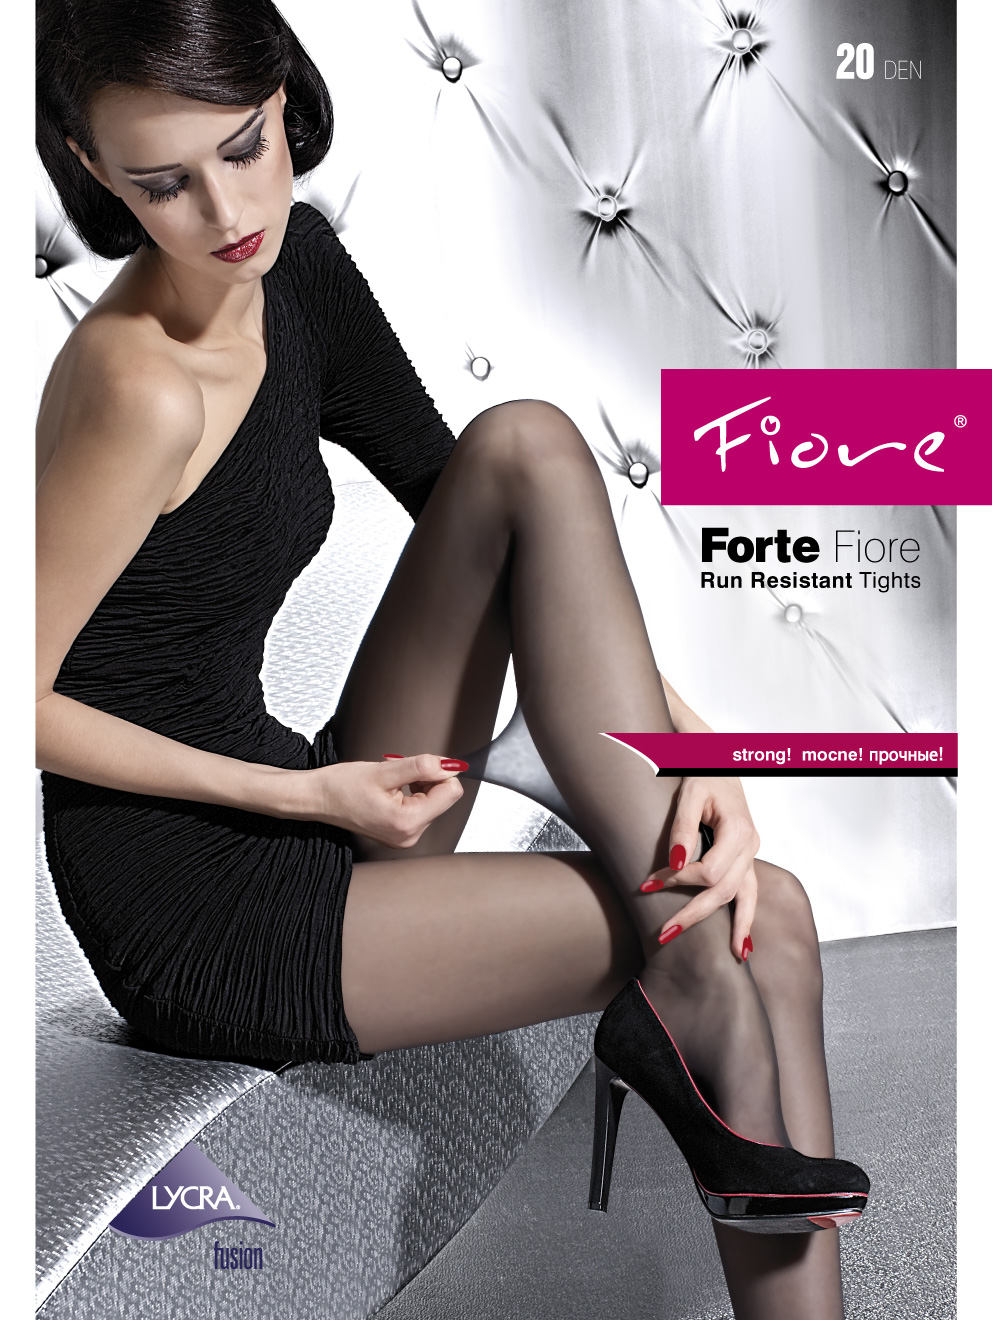 FORTE 20 den run resistant tights by Fiore, durable pantyhose